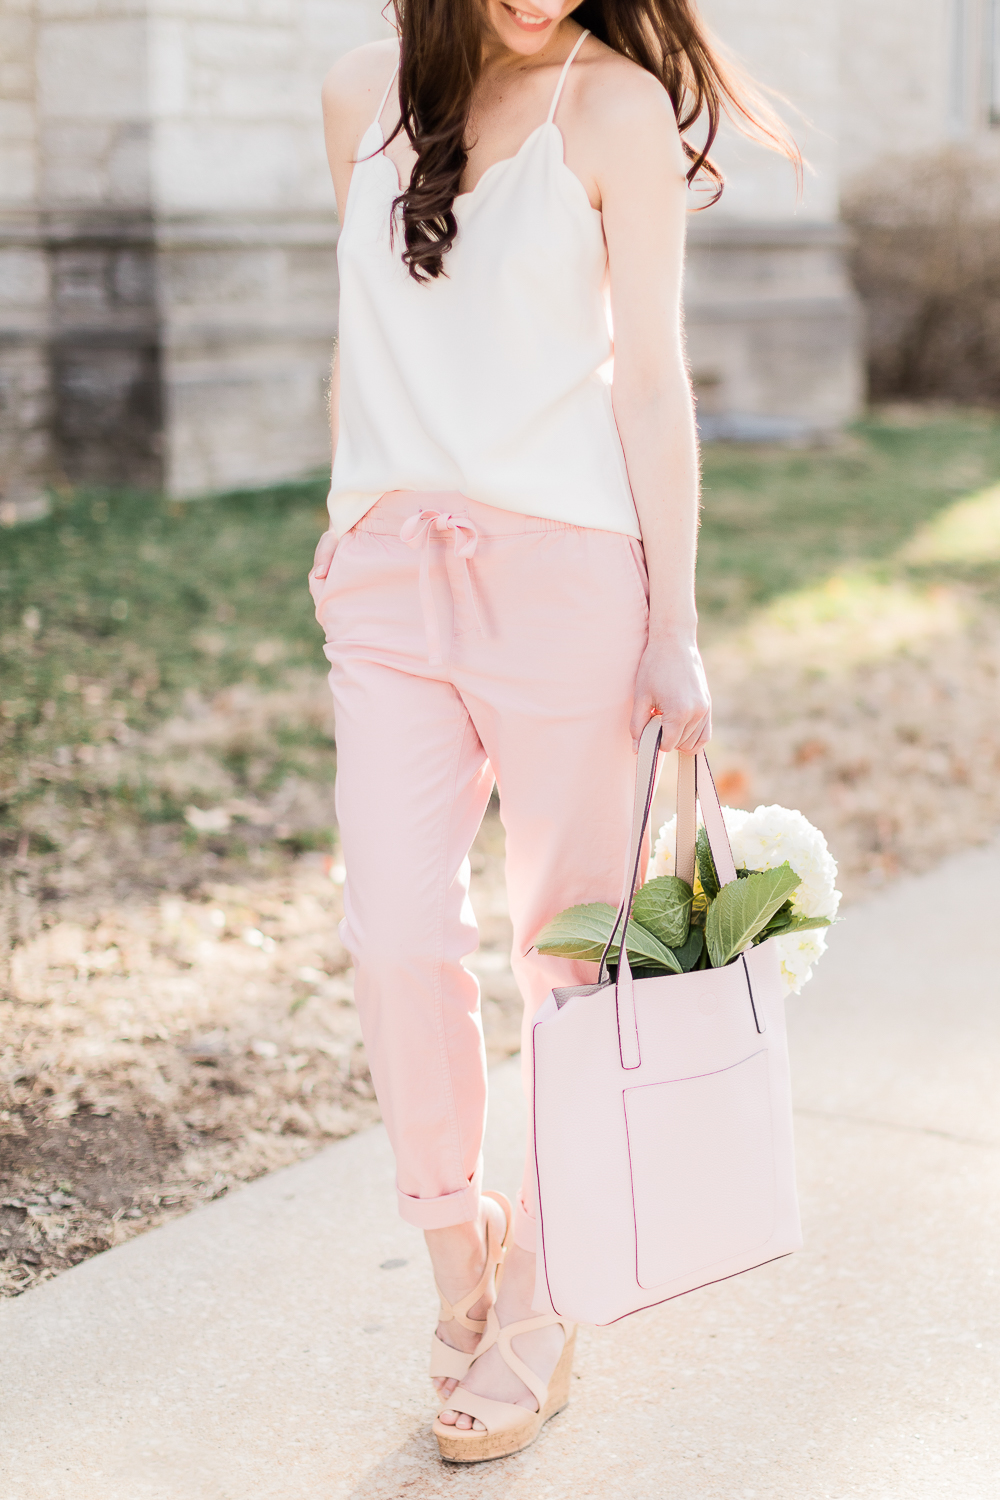 pink chino pants, white J Crew Factory scalloped cami top, pink Time and Tru tote, Date Night Outfit Ideas for Valentine's Day, Valentines Day outfit ideas, Galentines Day outfit ideas, Valentines Day outfits, popular affordable fashion blogger, Stephanie Ziajka, popular affordable fashion blog, Diary of a Debutante